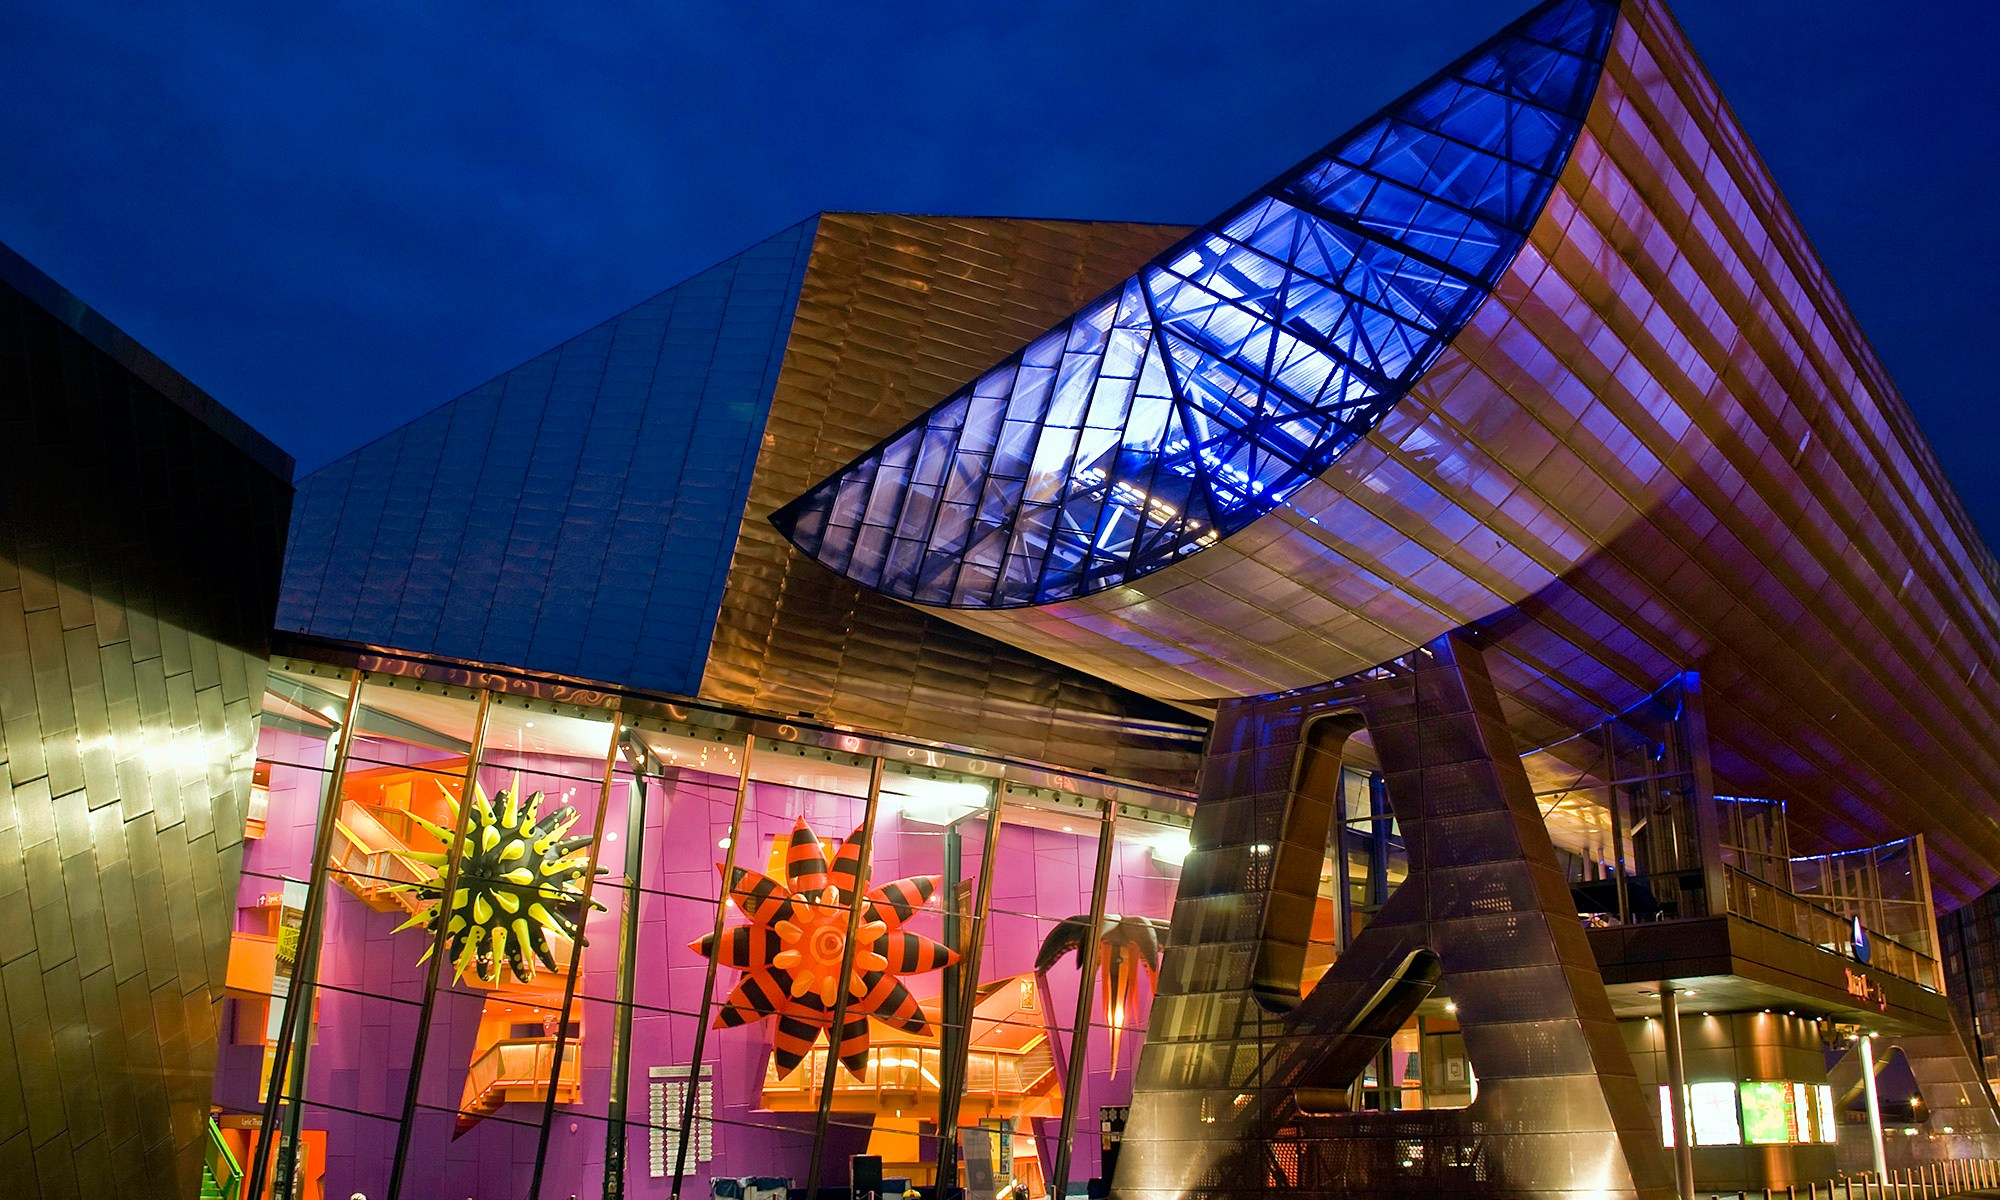 Spacecadets Artwork - The Lowry at Night